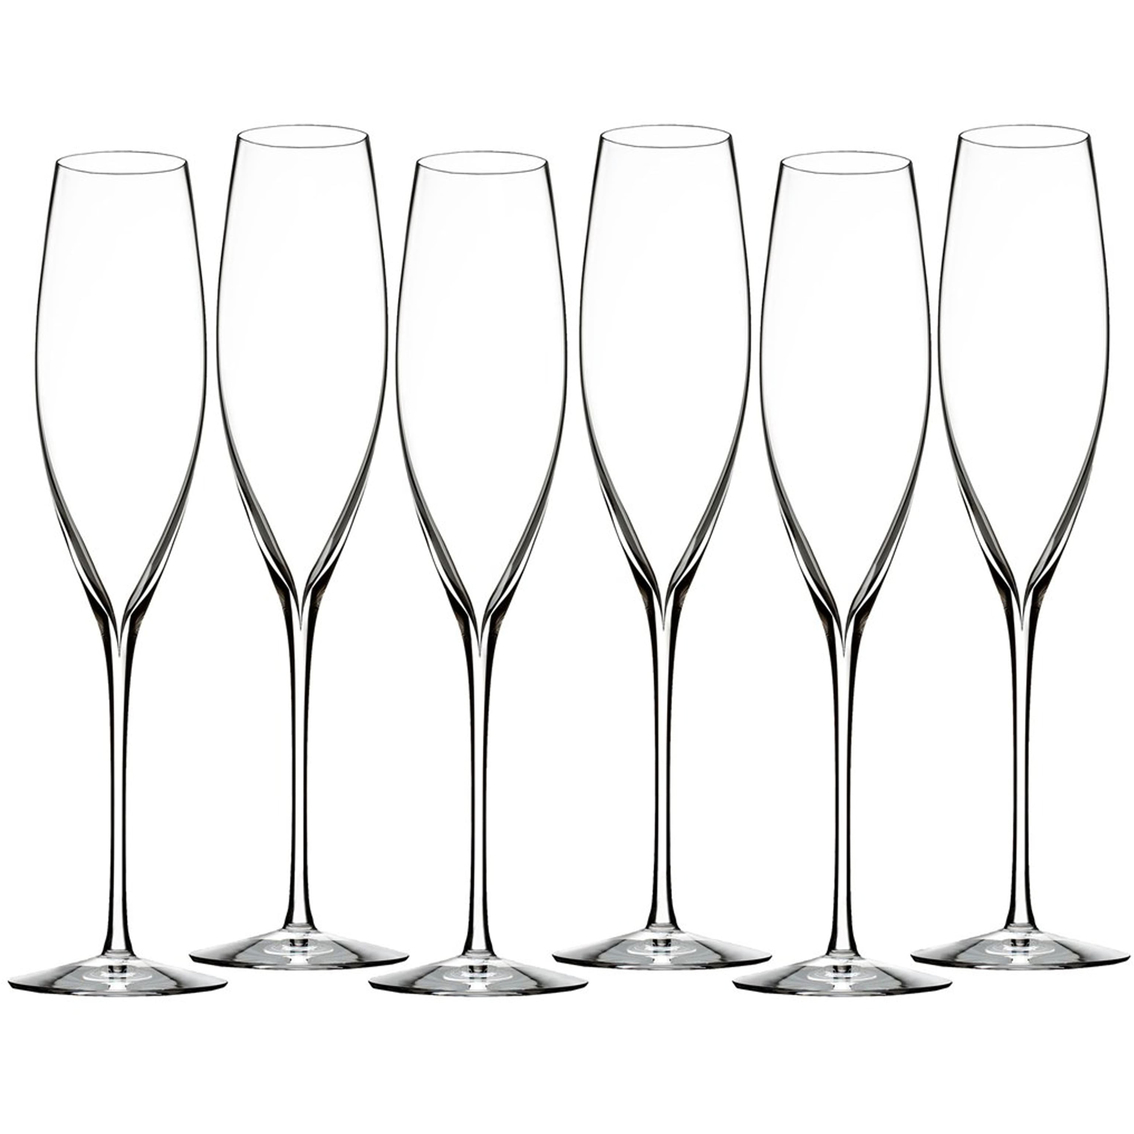 Waterford Elegance 6 Pc. Classic Champagne Toasting Flute